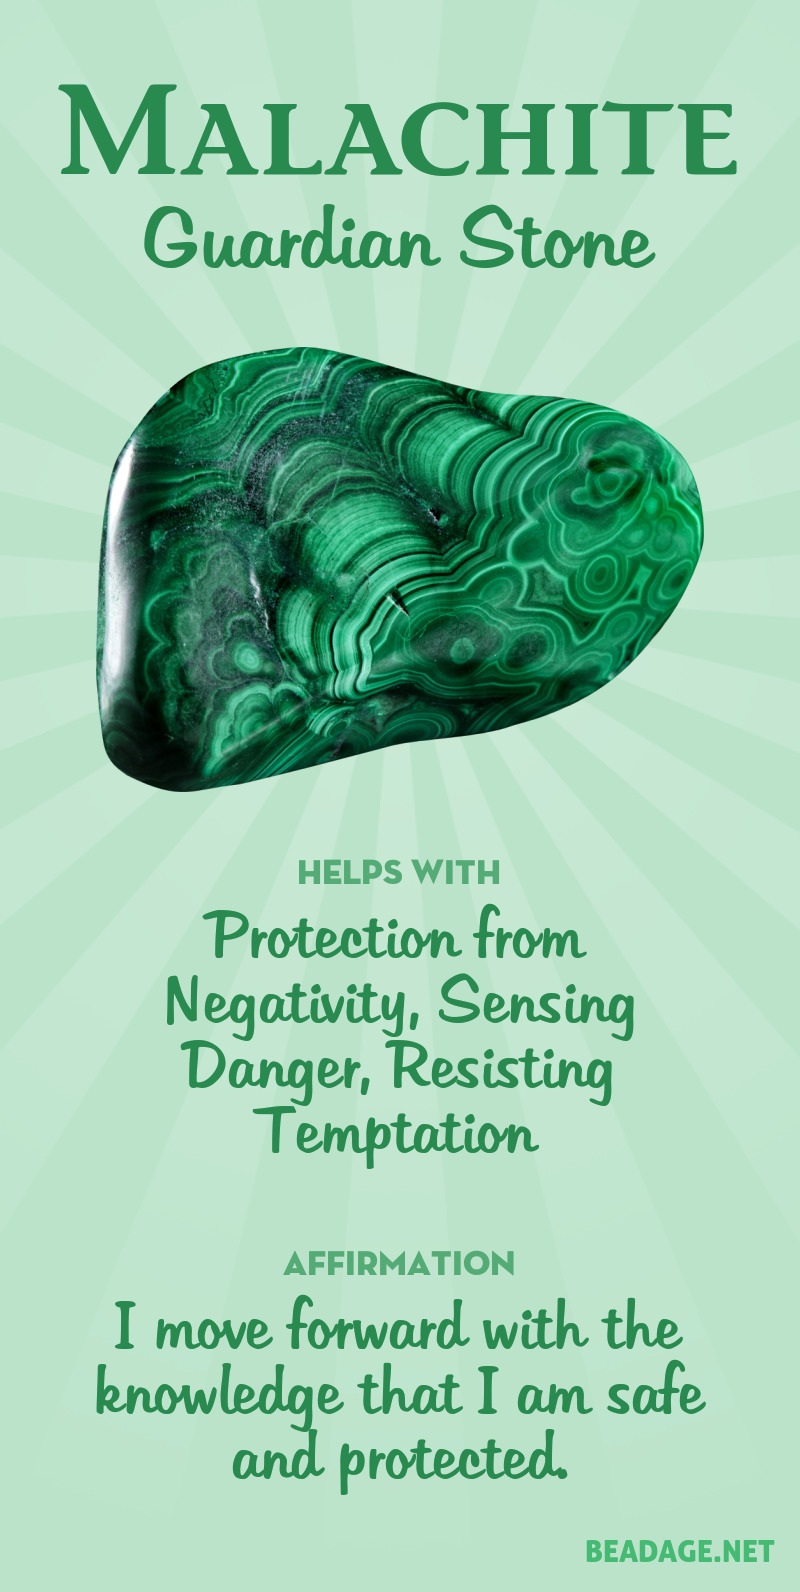 malachite meaning and properties beadage